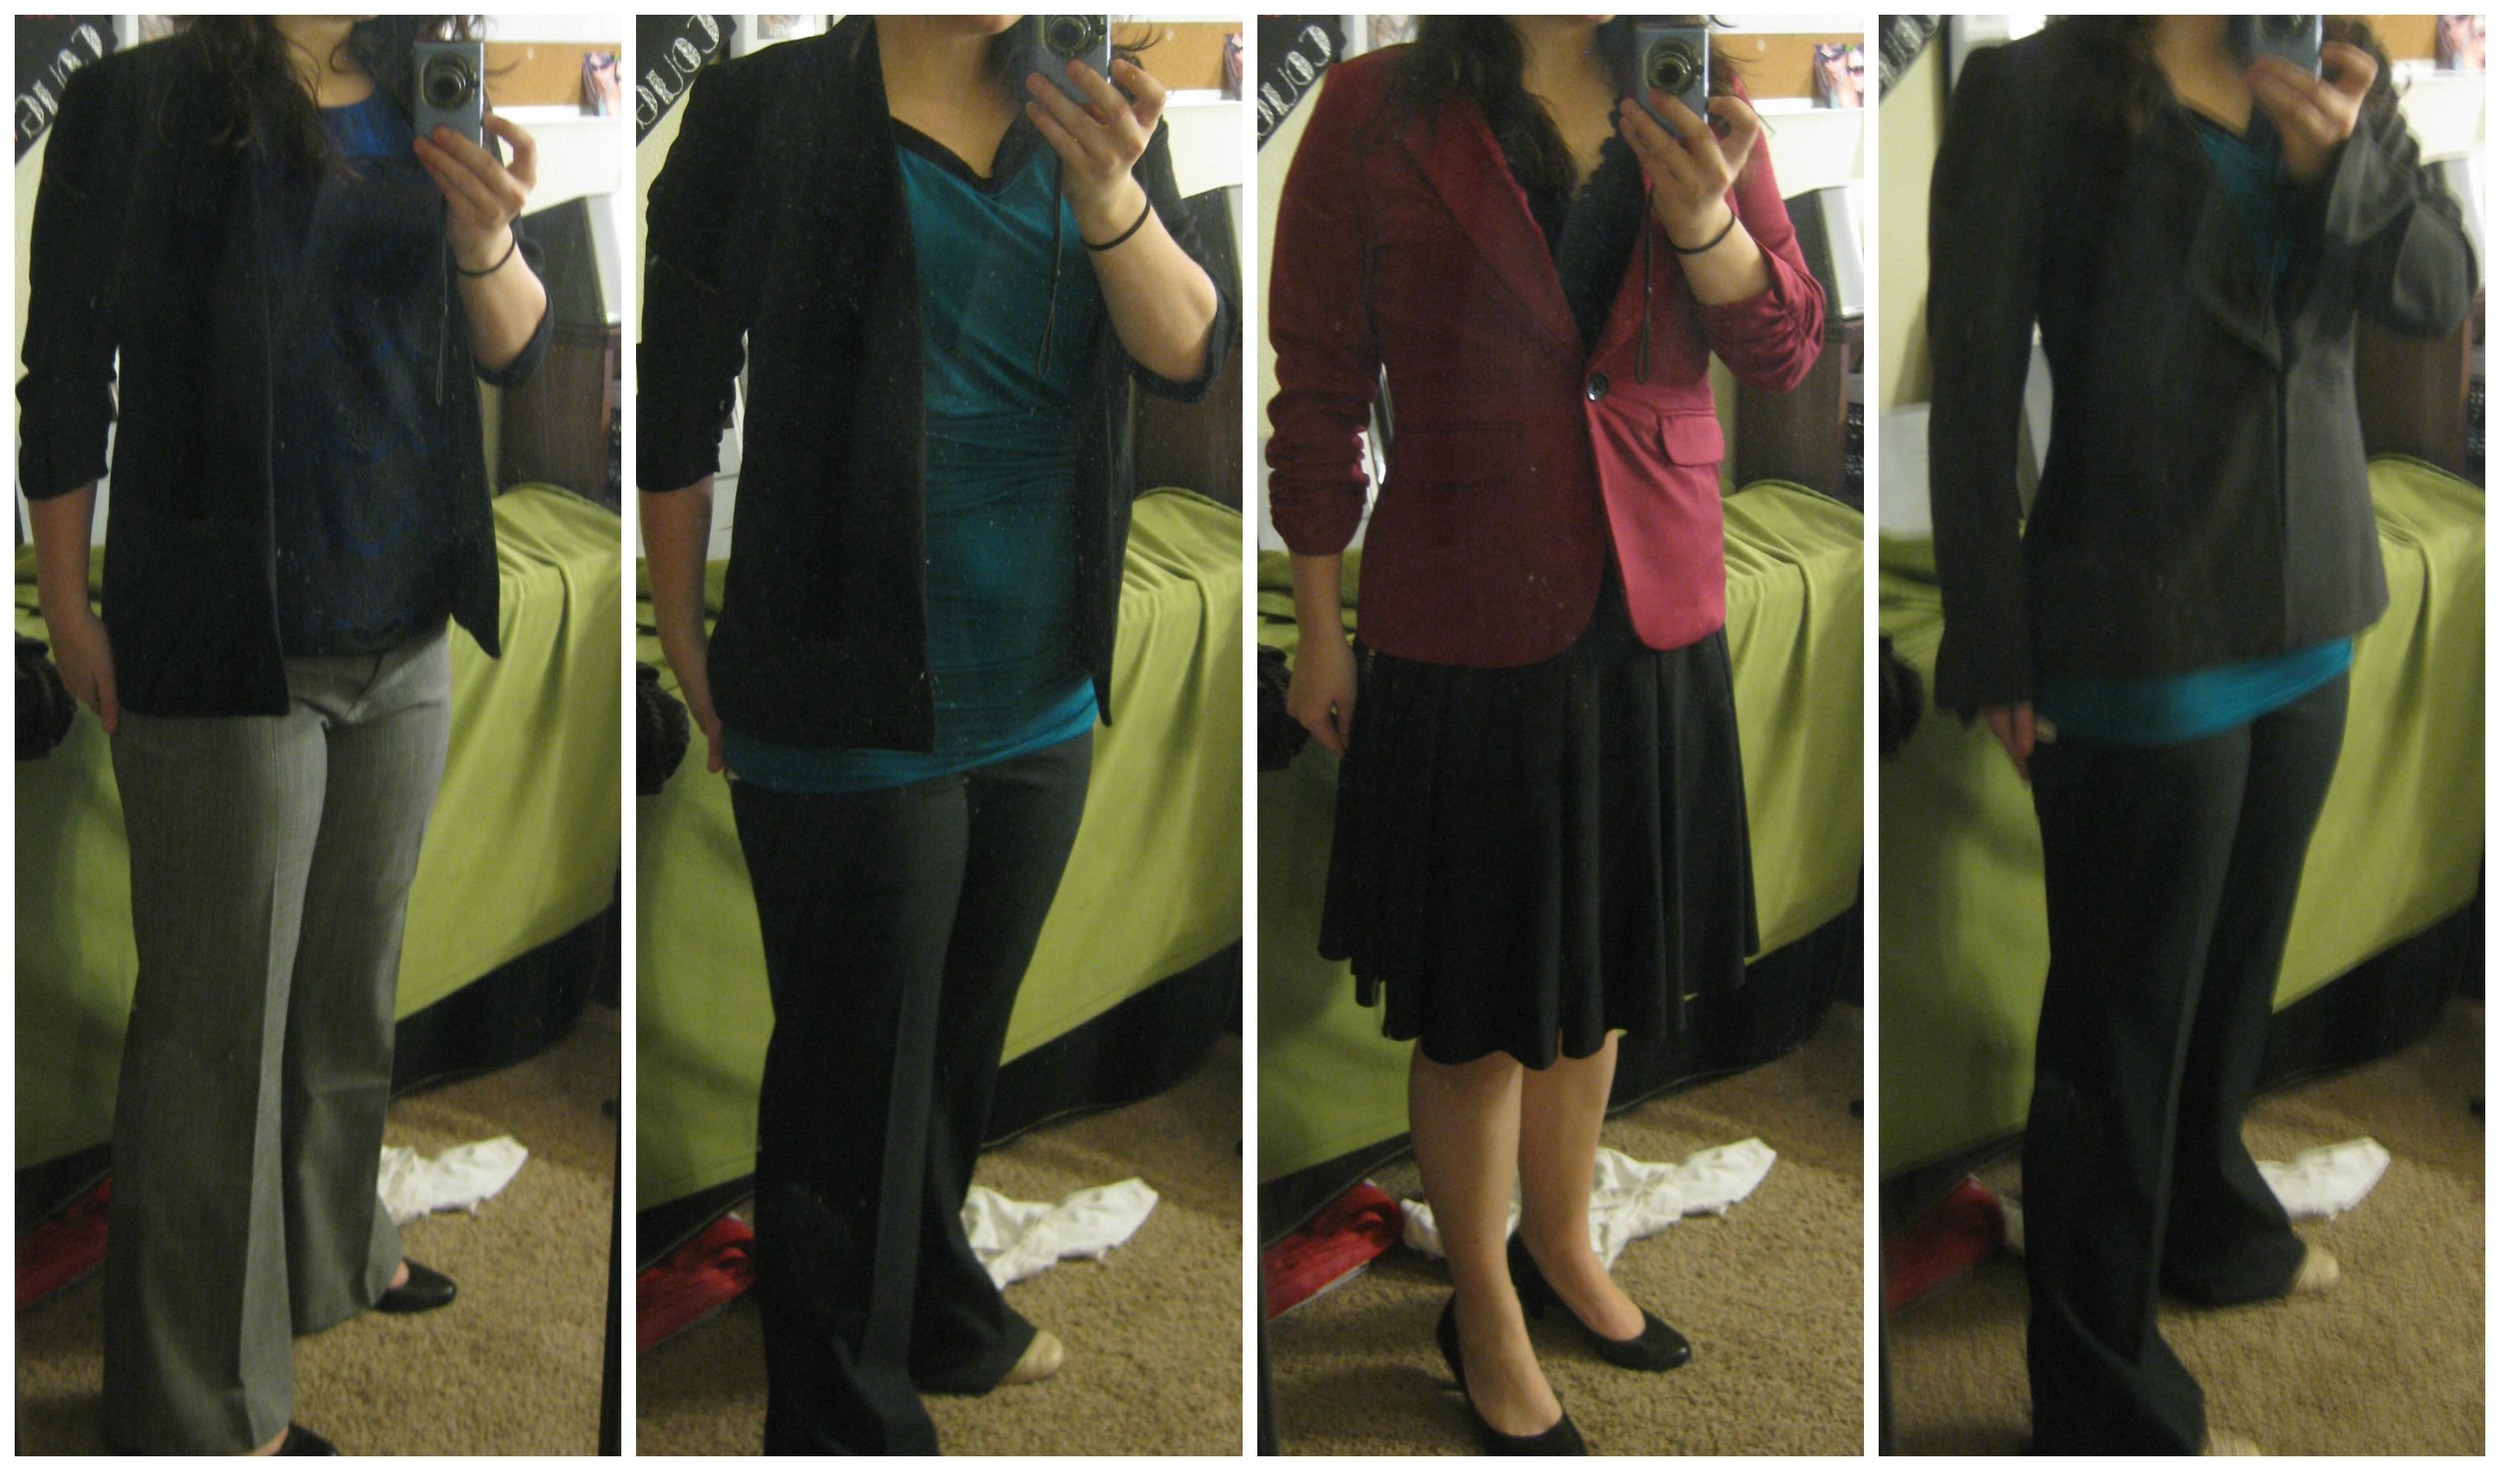 Just some interview outfit ideas! The grey slacks, black blazer, and cranberry colored blazer were some of my go-to pieces! I only really busted out the skirt when I was down South and felt I should be more lady-like!Apologies for the terrible quality! These were from a few years ago when I had a cell phone with a REALLY terrible camera.